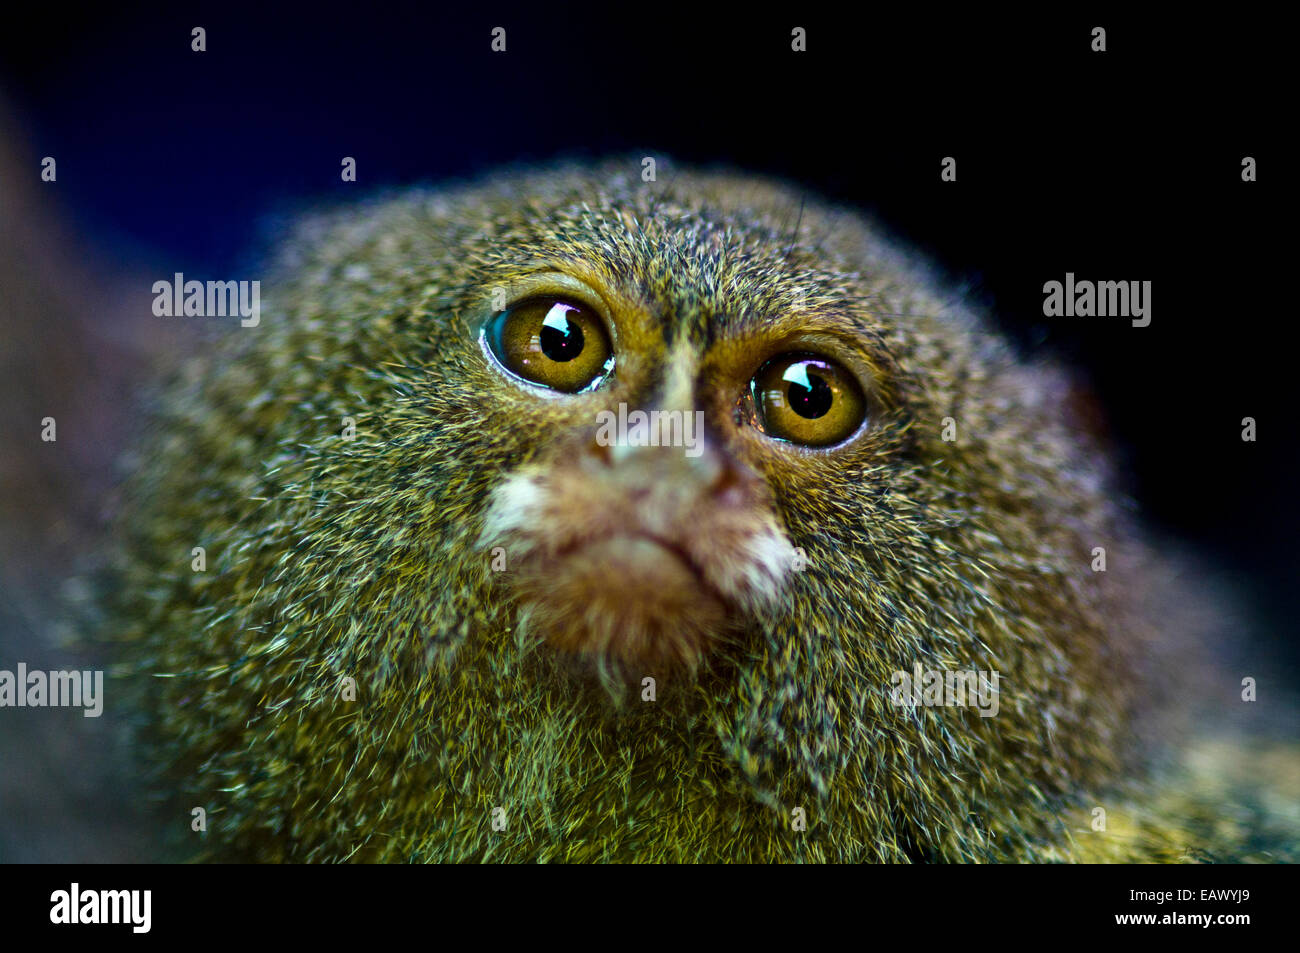 A terrified Pygmy Marmoset for sale in an Amazon River town black market. - Stock Image